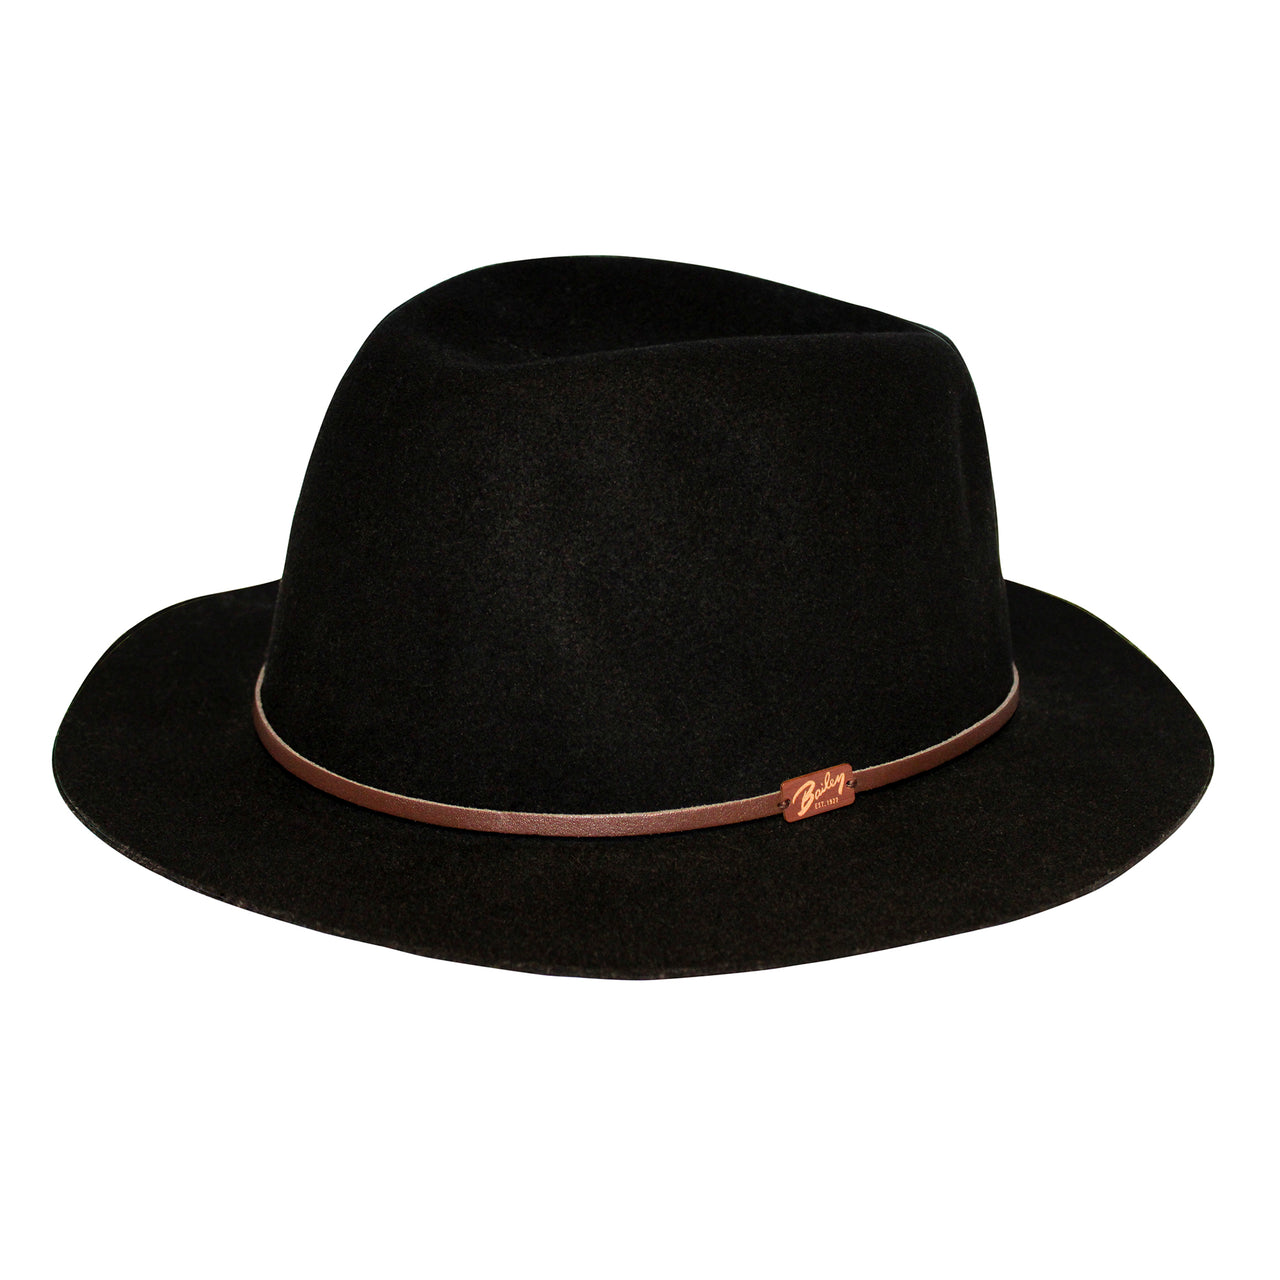 BAILEY JACKMAN ROLLABLE HAT